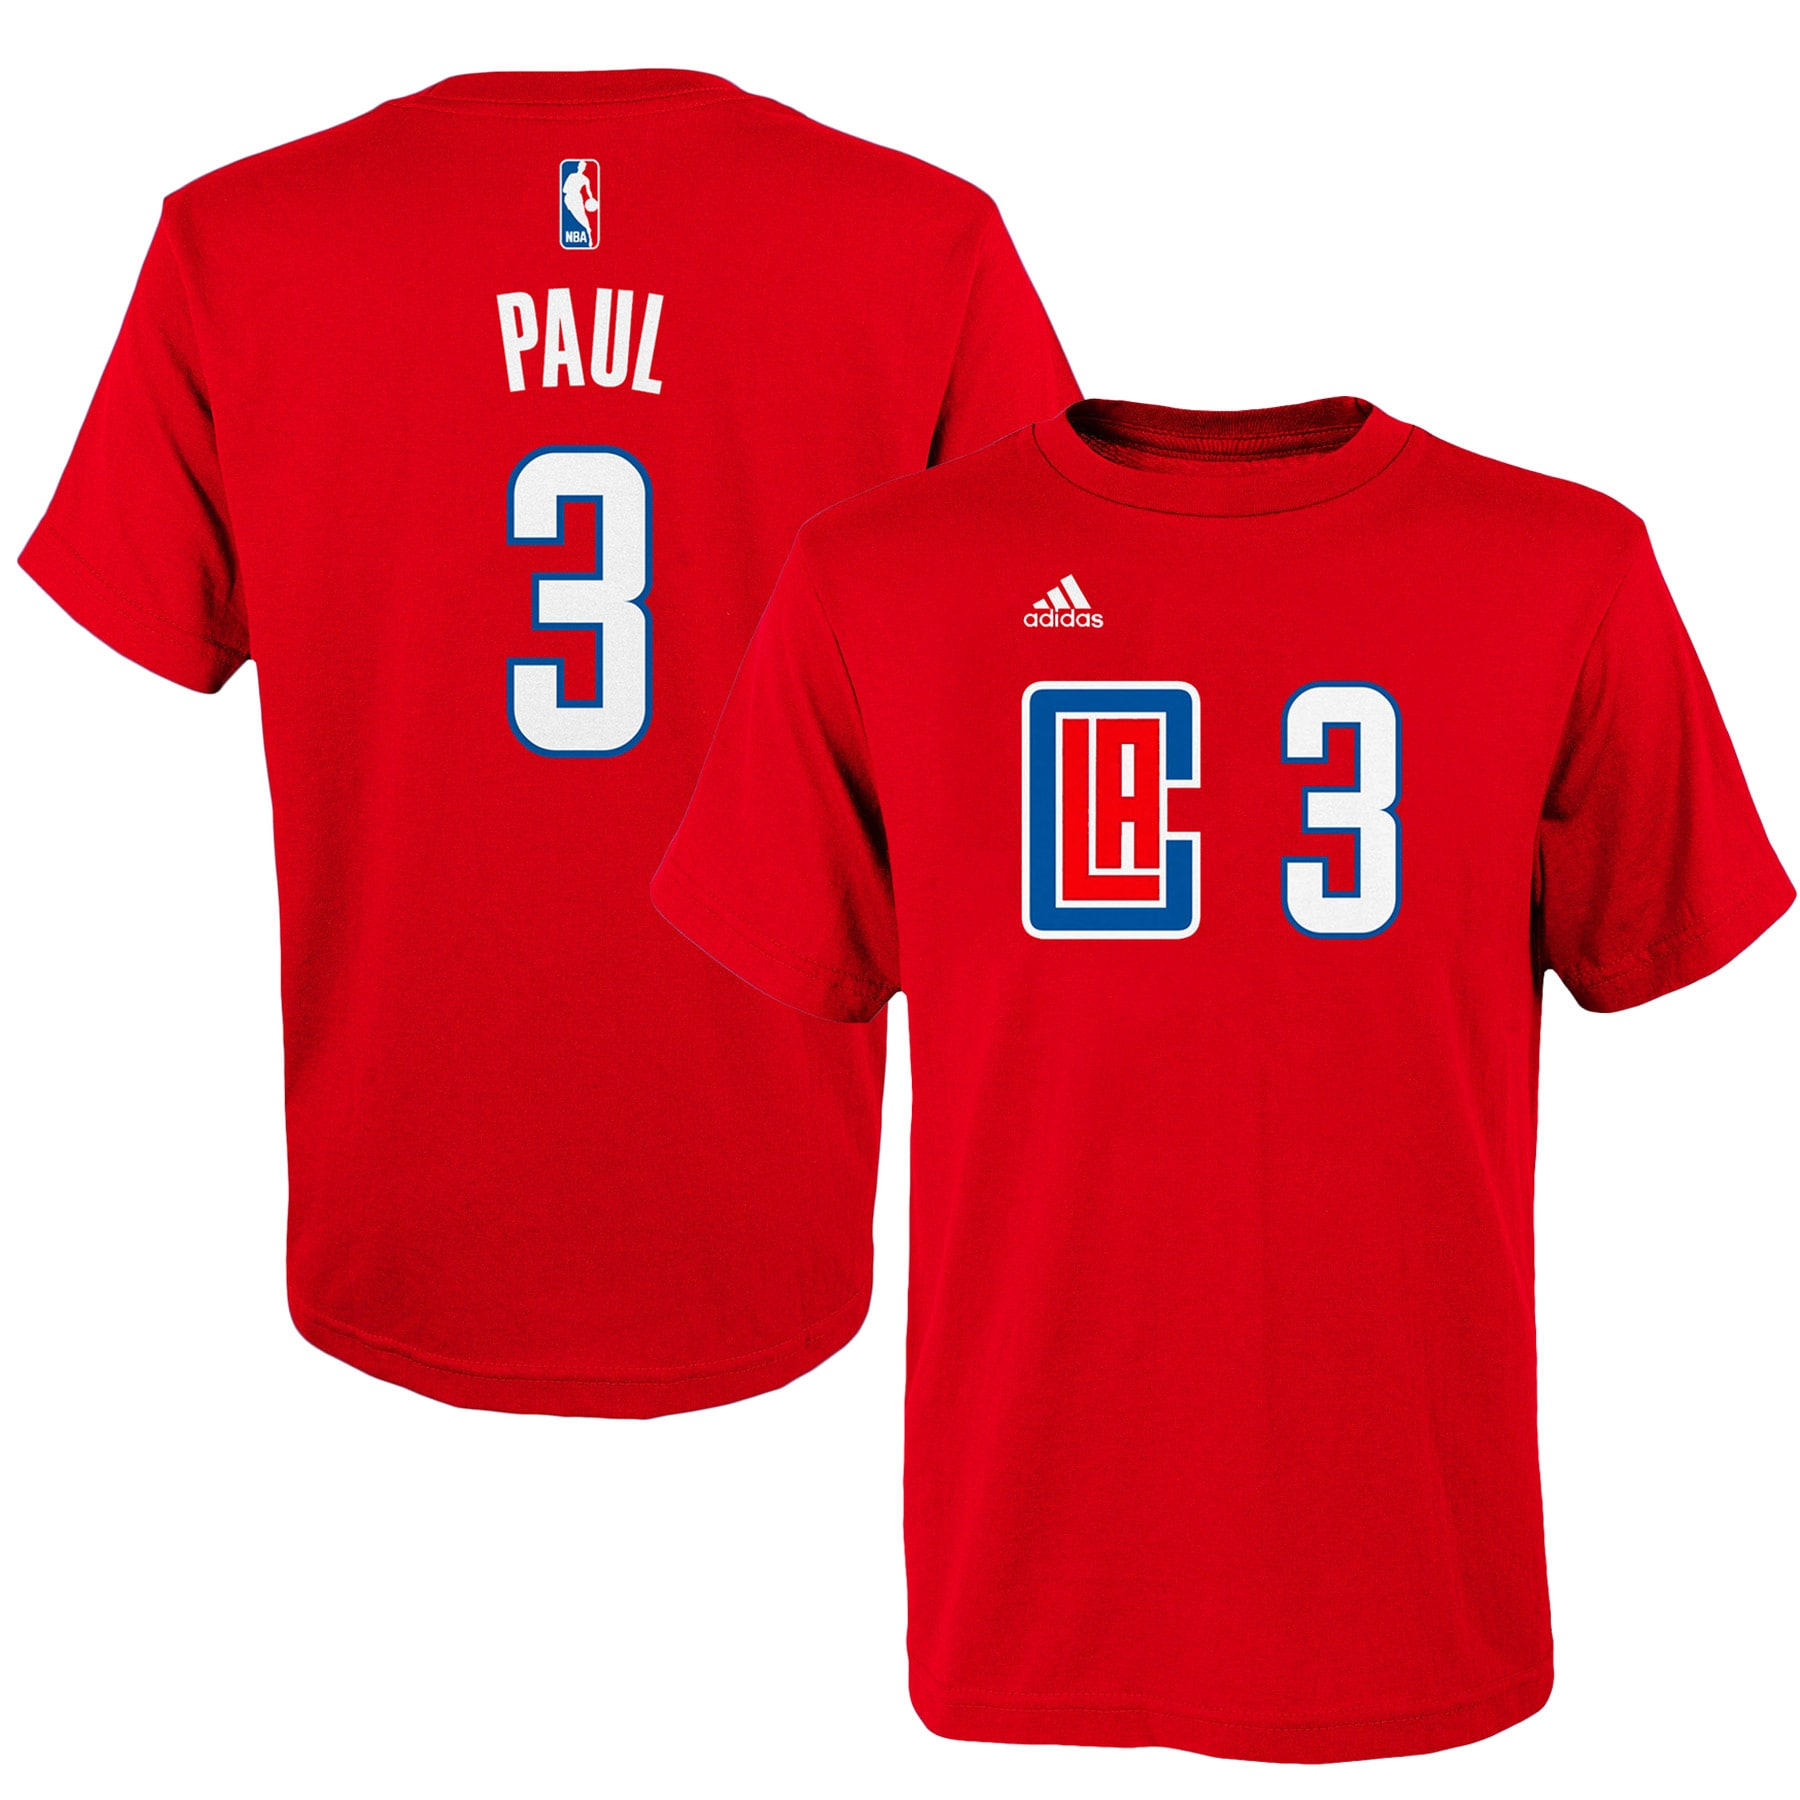 Chris Paul LA Clippers adidas Youth Game Time Flat Name & Number T-Shirt - Red